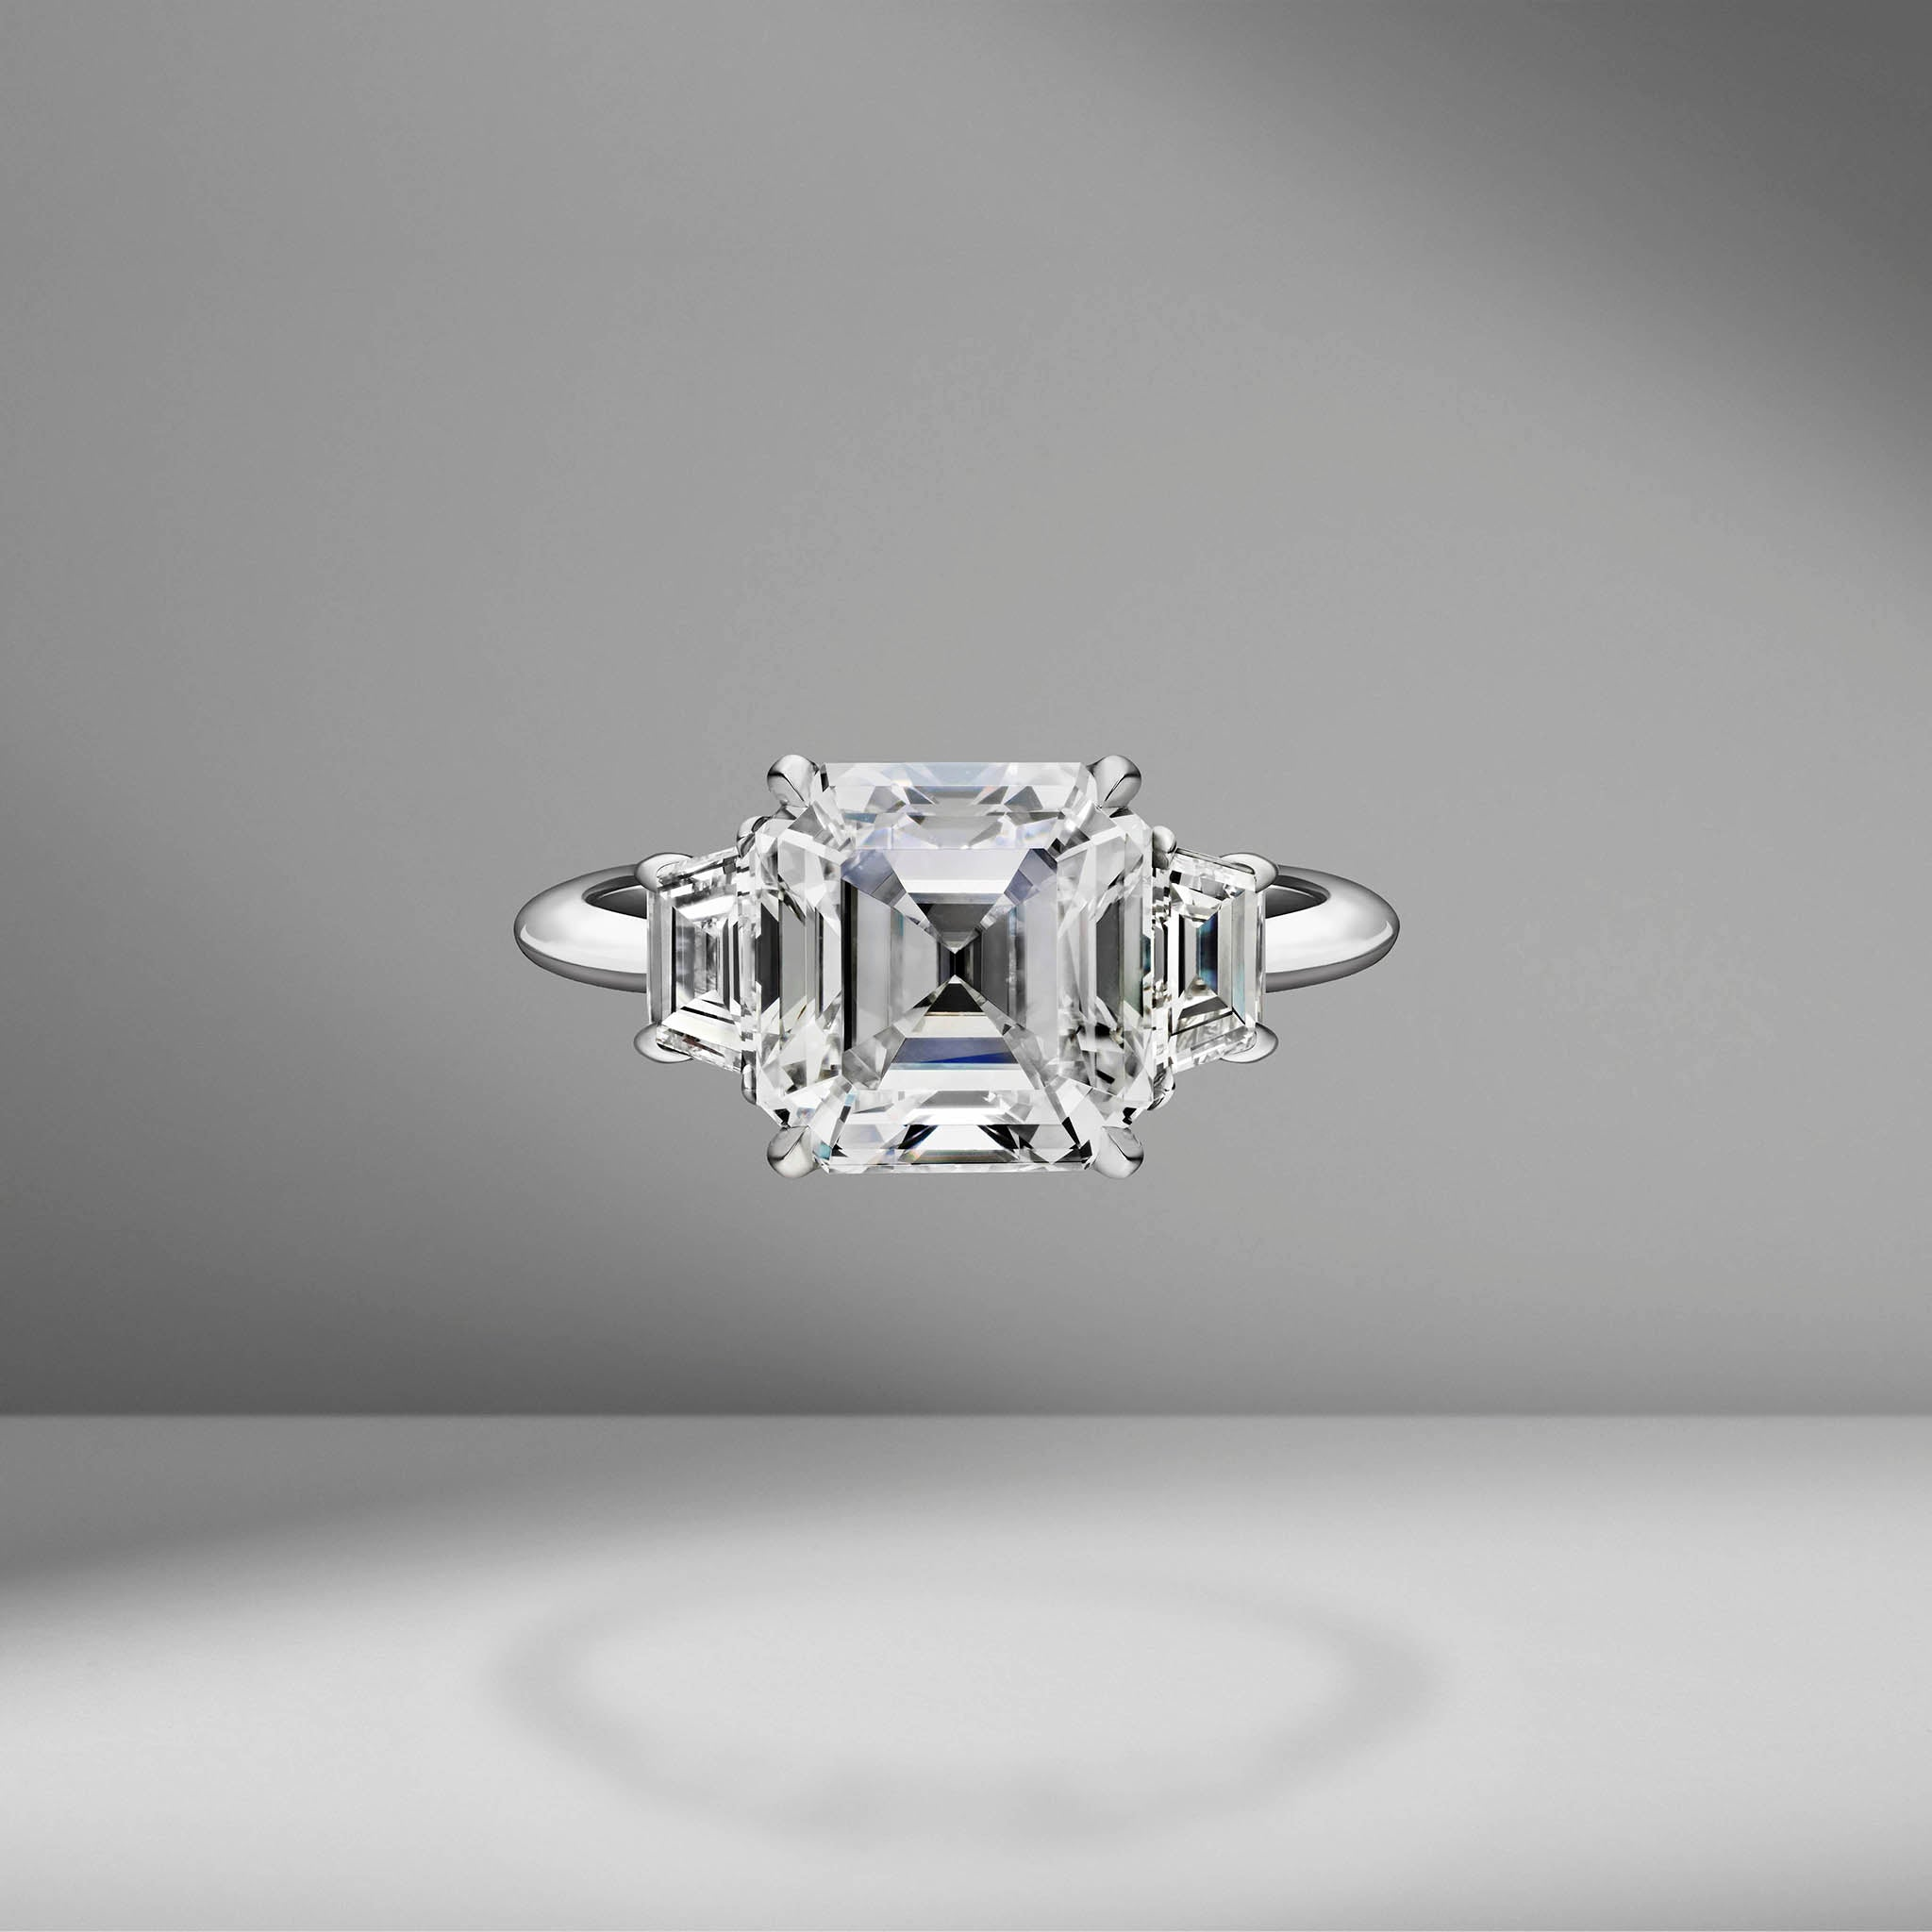 Asscher Cut Engagement Ring with Trapezoids